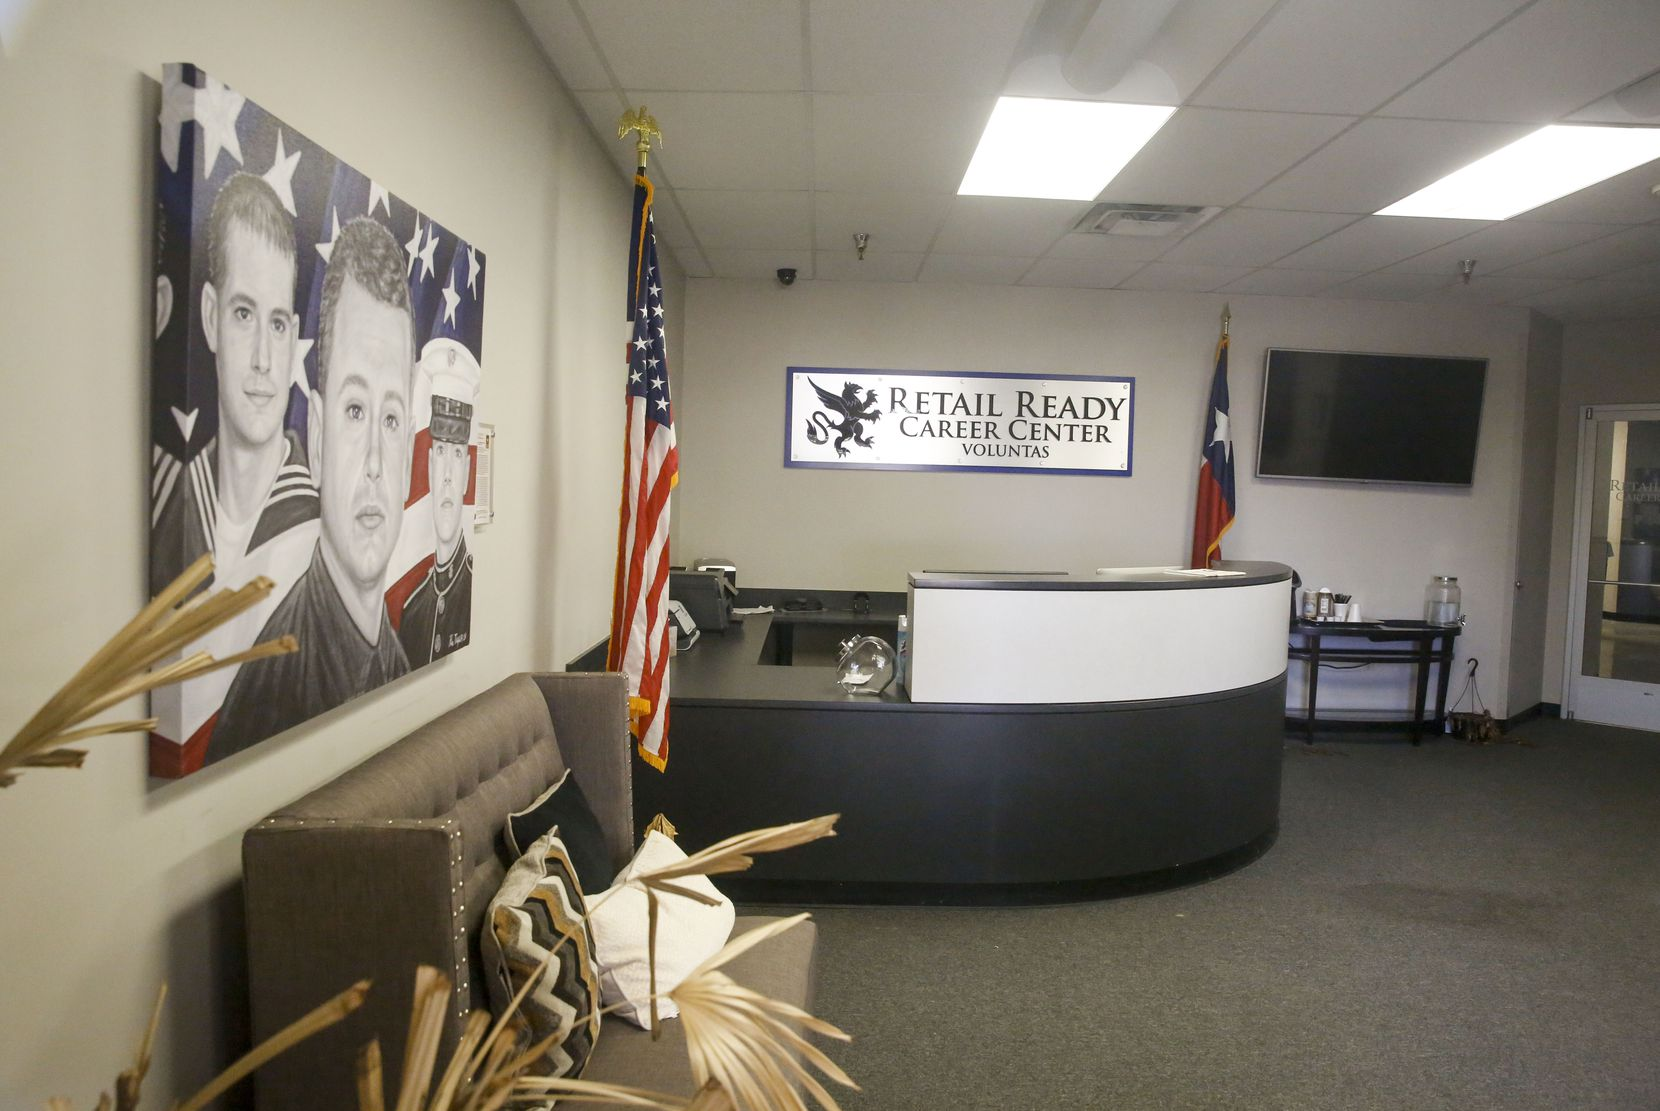 The lobby of the Retail Ready Career Center sits empty and frozen in time in 2019, just as it was when it was closed in 2017 by the federal government as part of a criminal investigation.